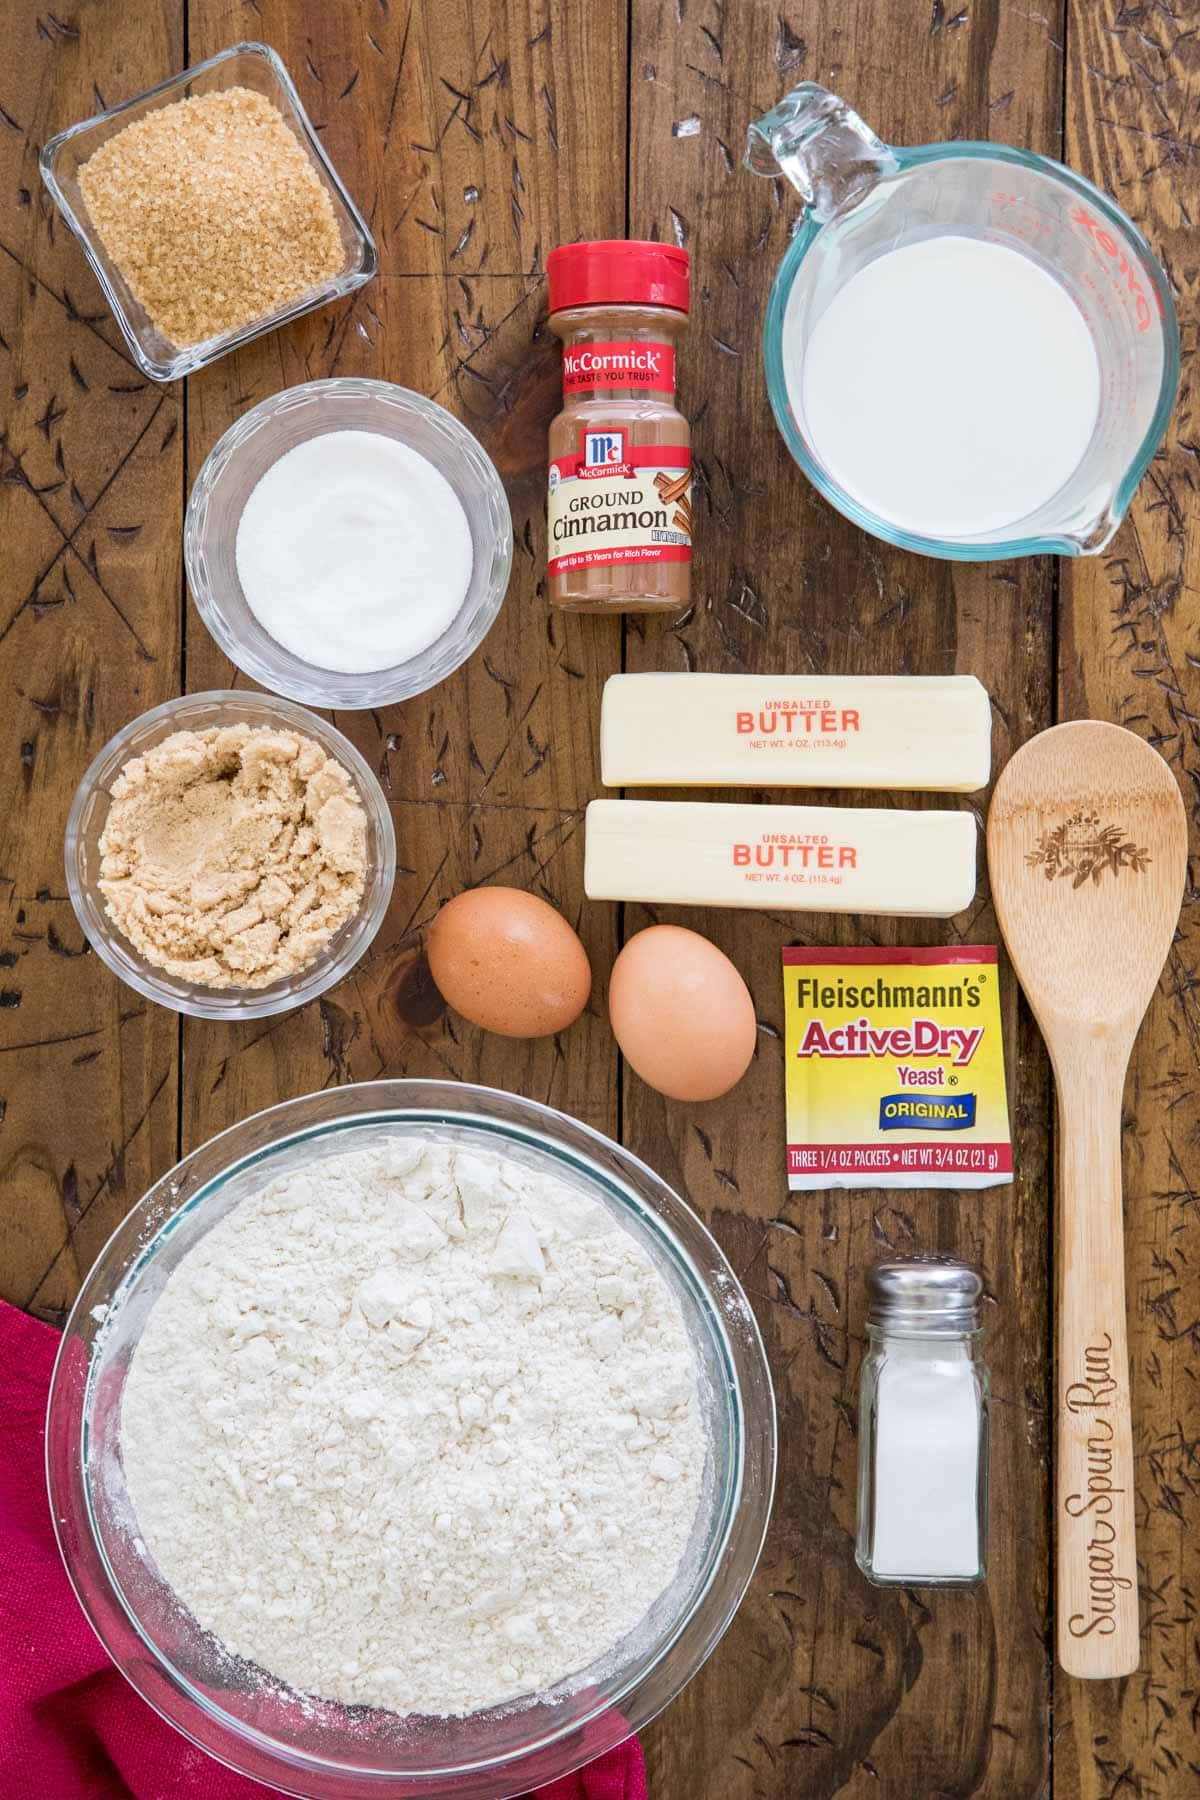 Ingredients for star bread